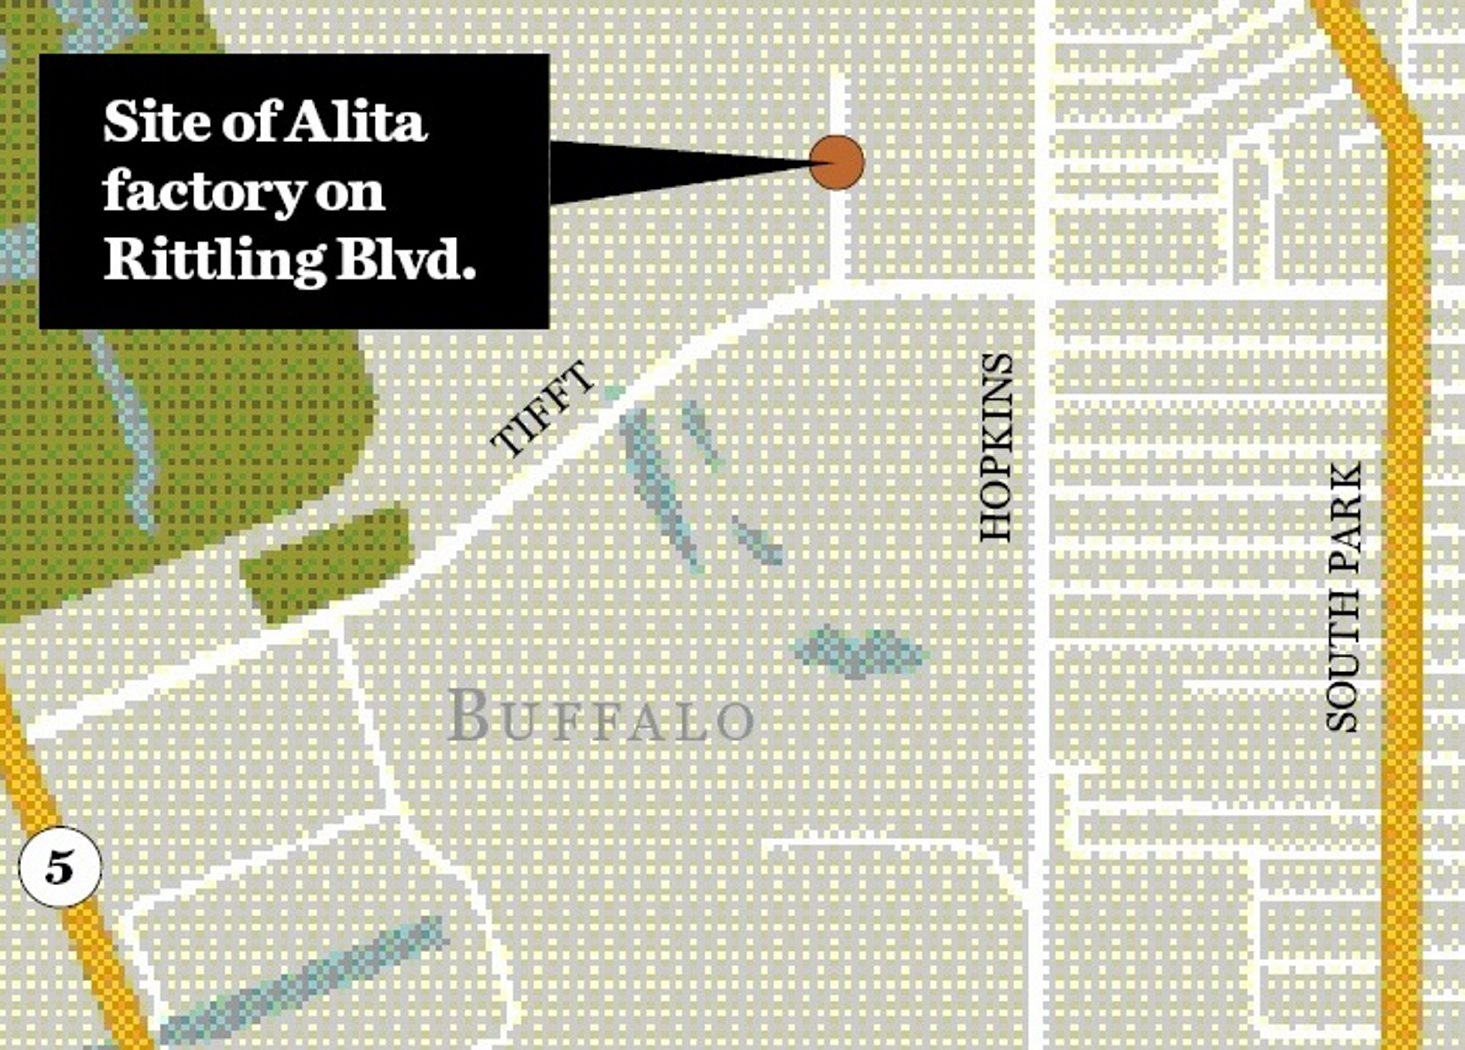 Map shows site of proposed Alita factory.